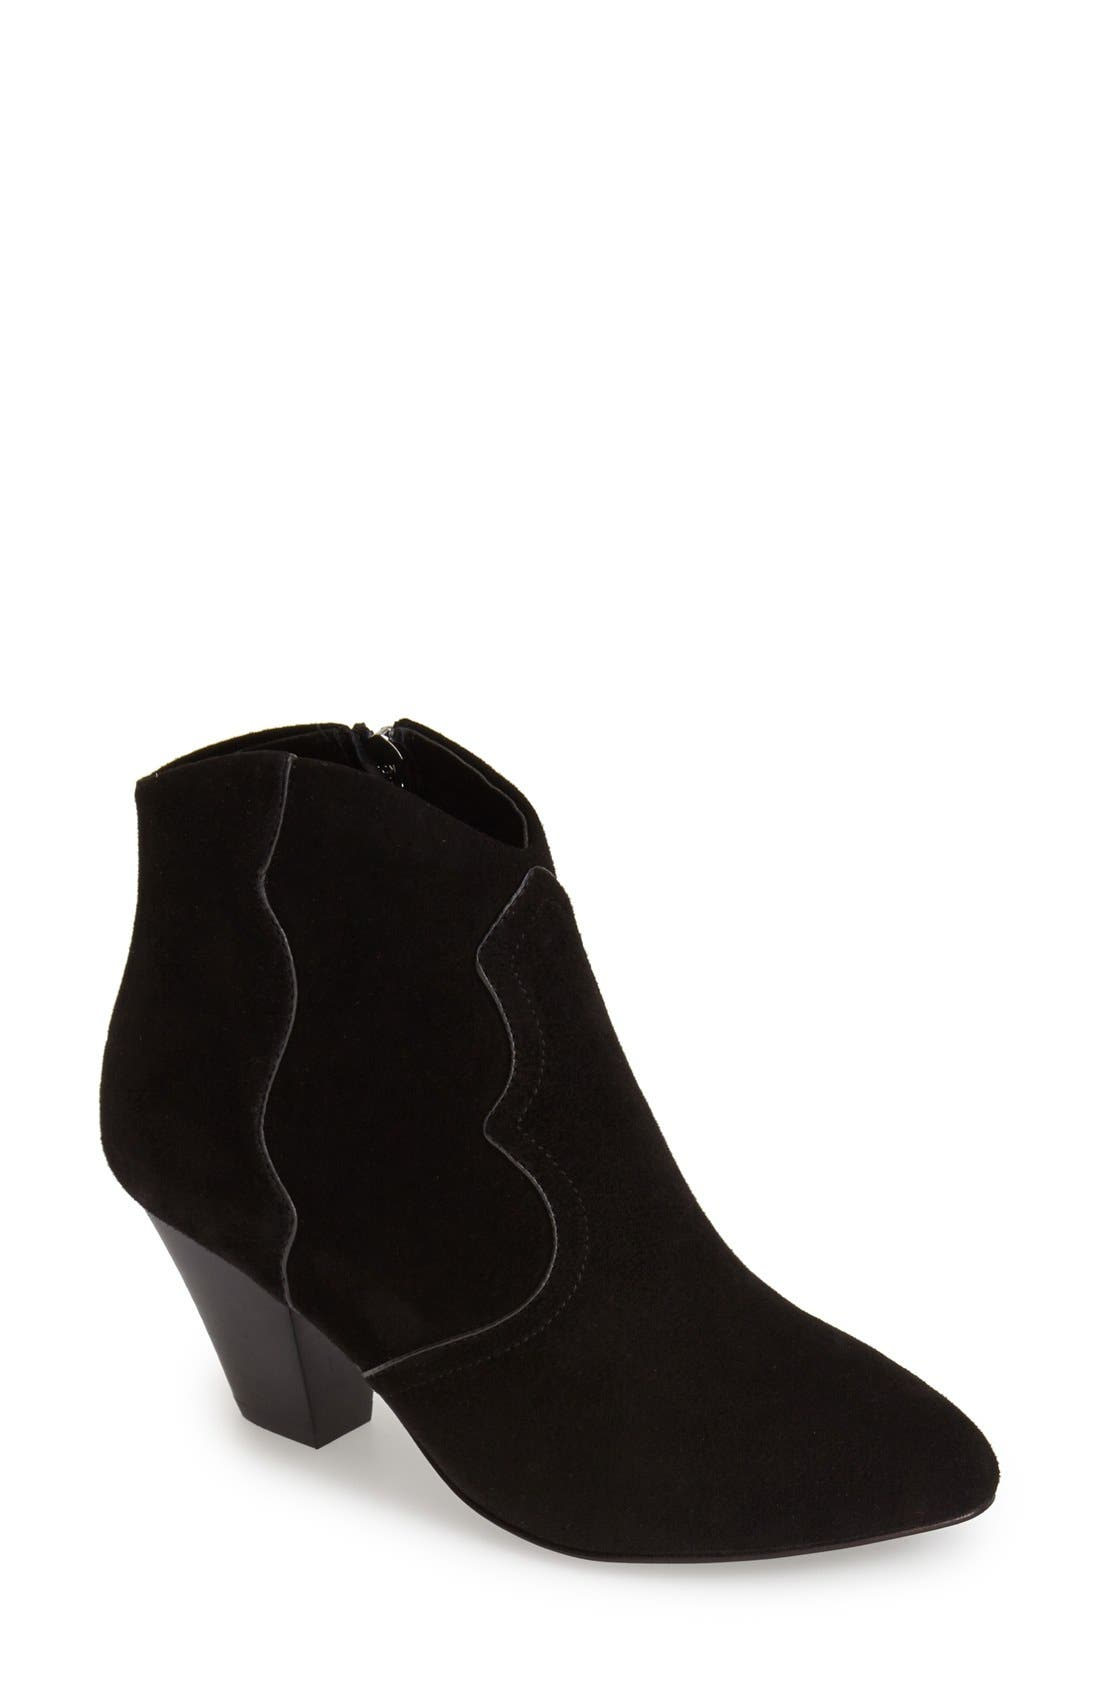 Alternate Image 1 Selected - Ash 'Gang' Pointy Toe Bootie (Women)